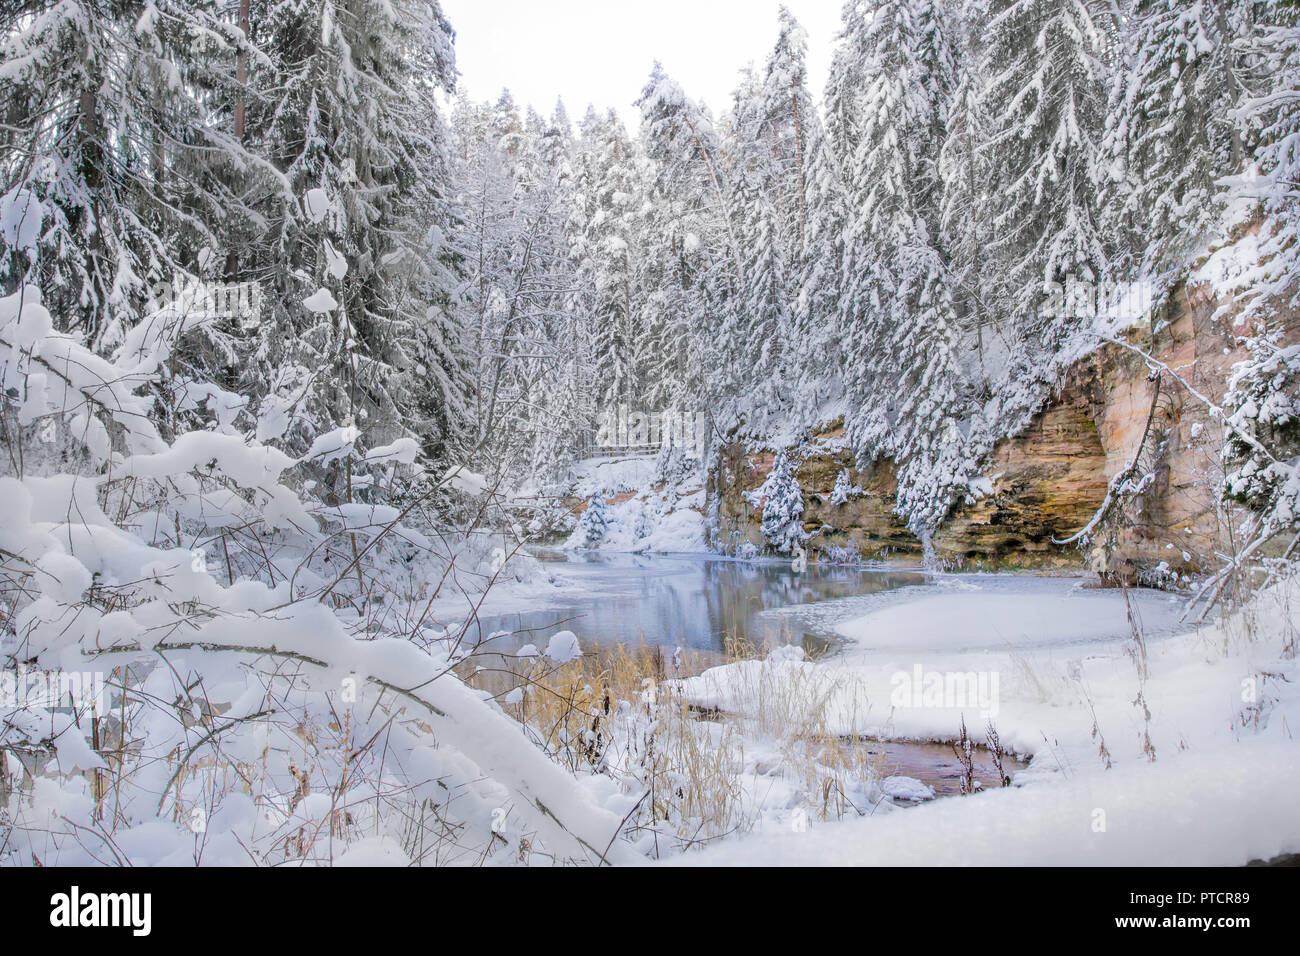 winter and tree, white sanow and cold weather in Estonia, europe - Stock Image